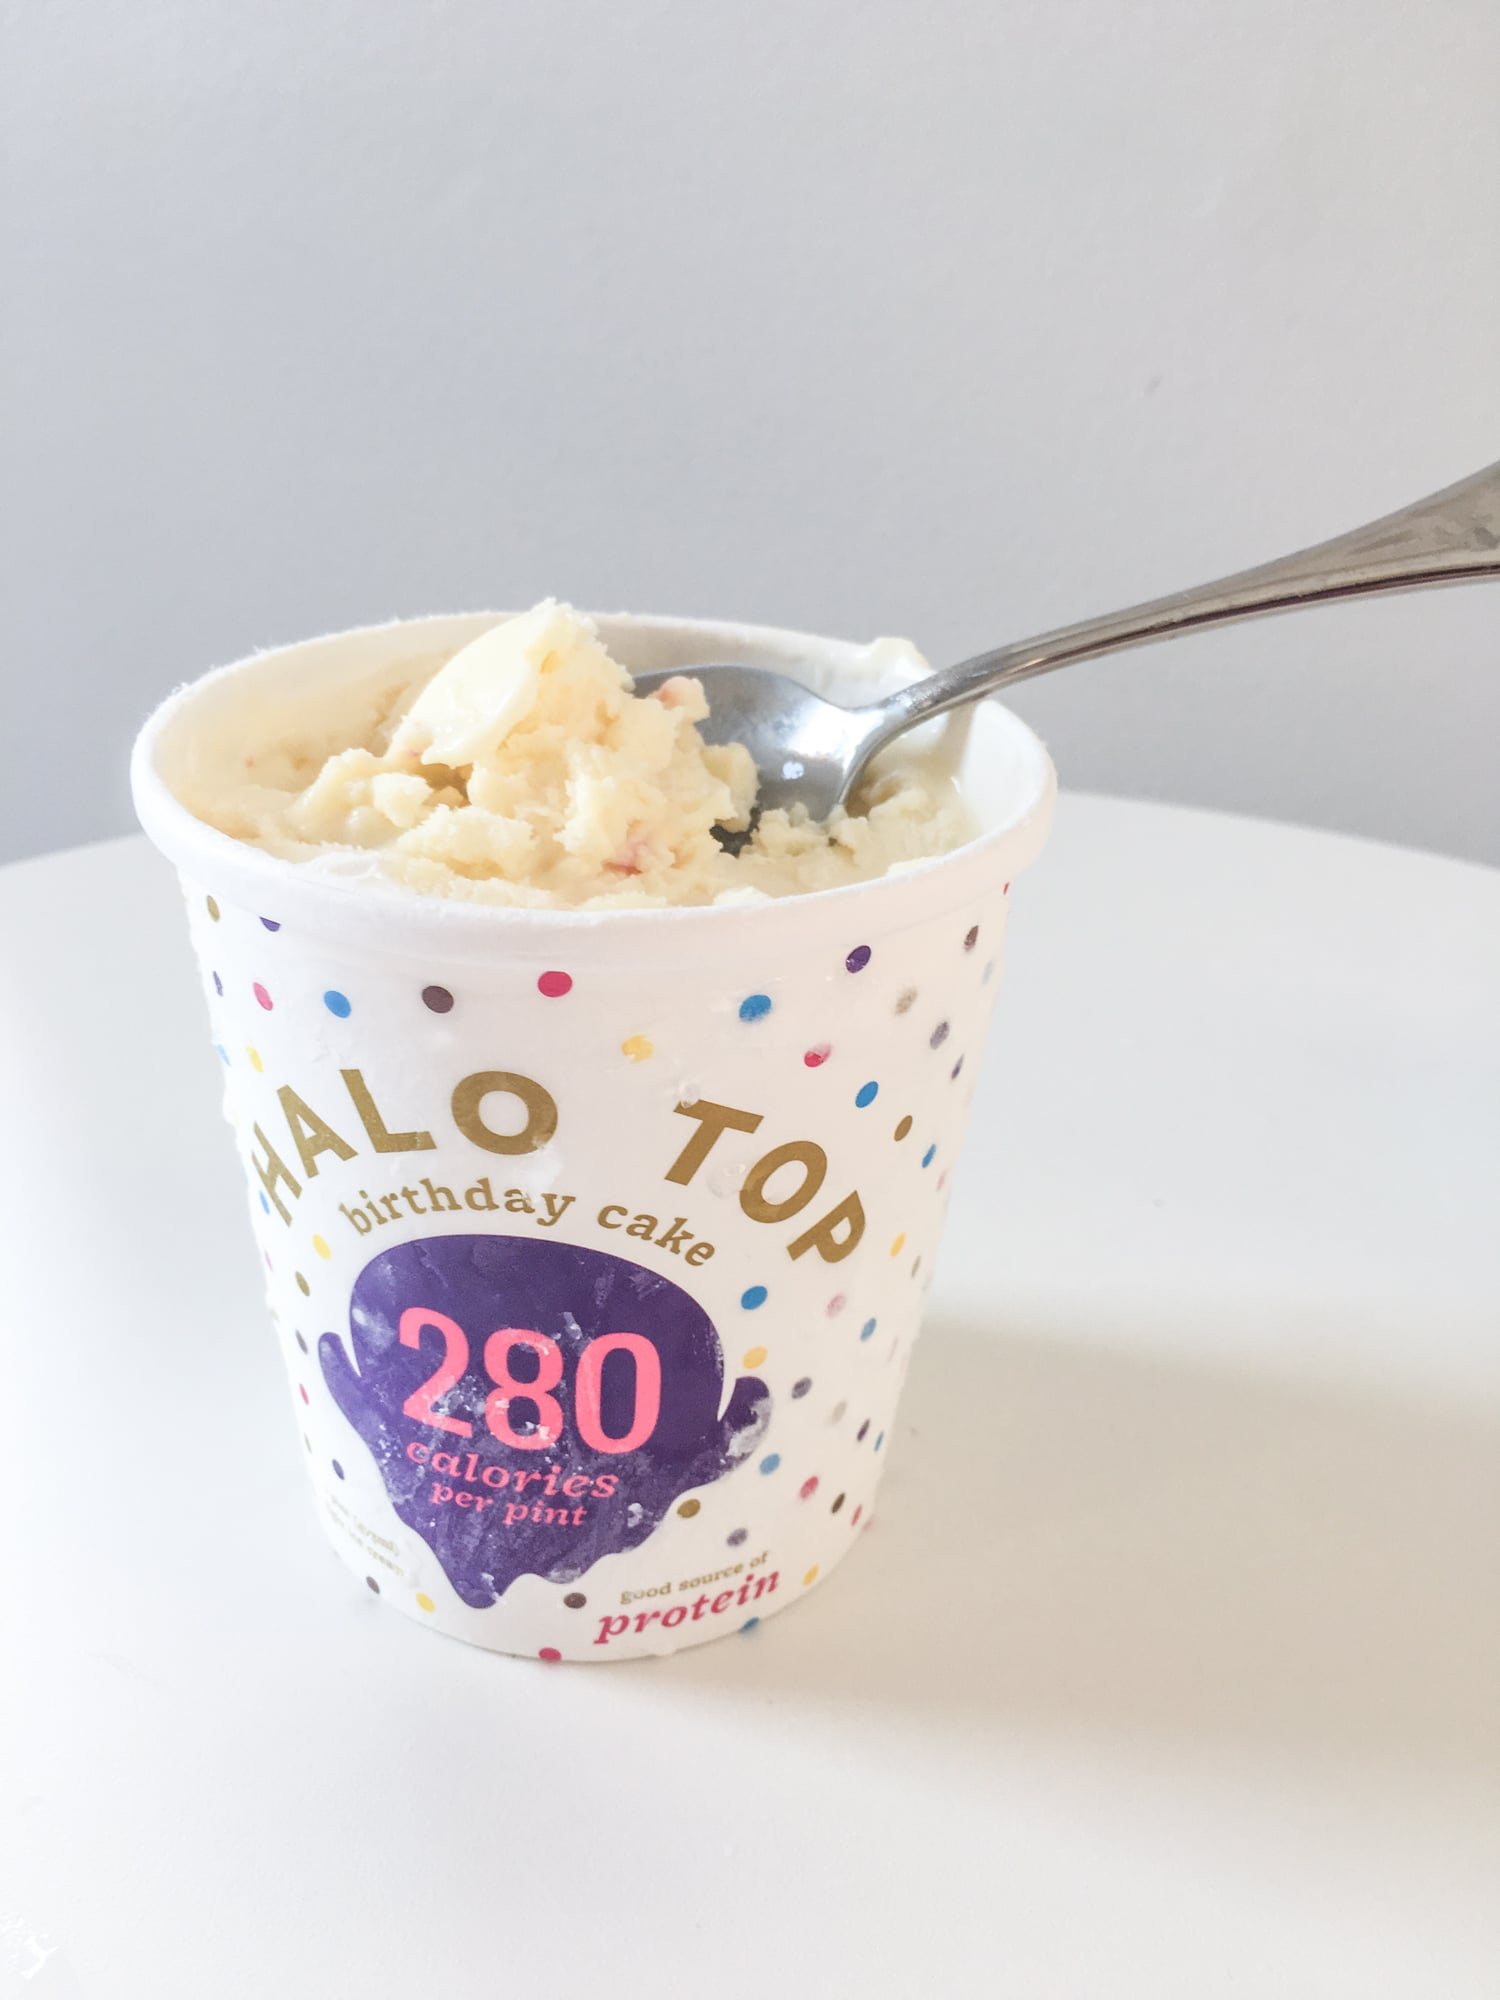 Birthday Cake Ice Cream Halo Top